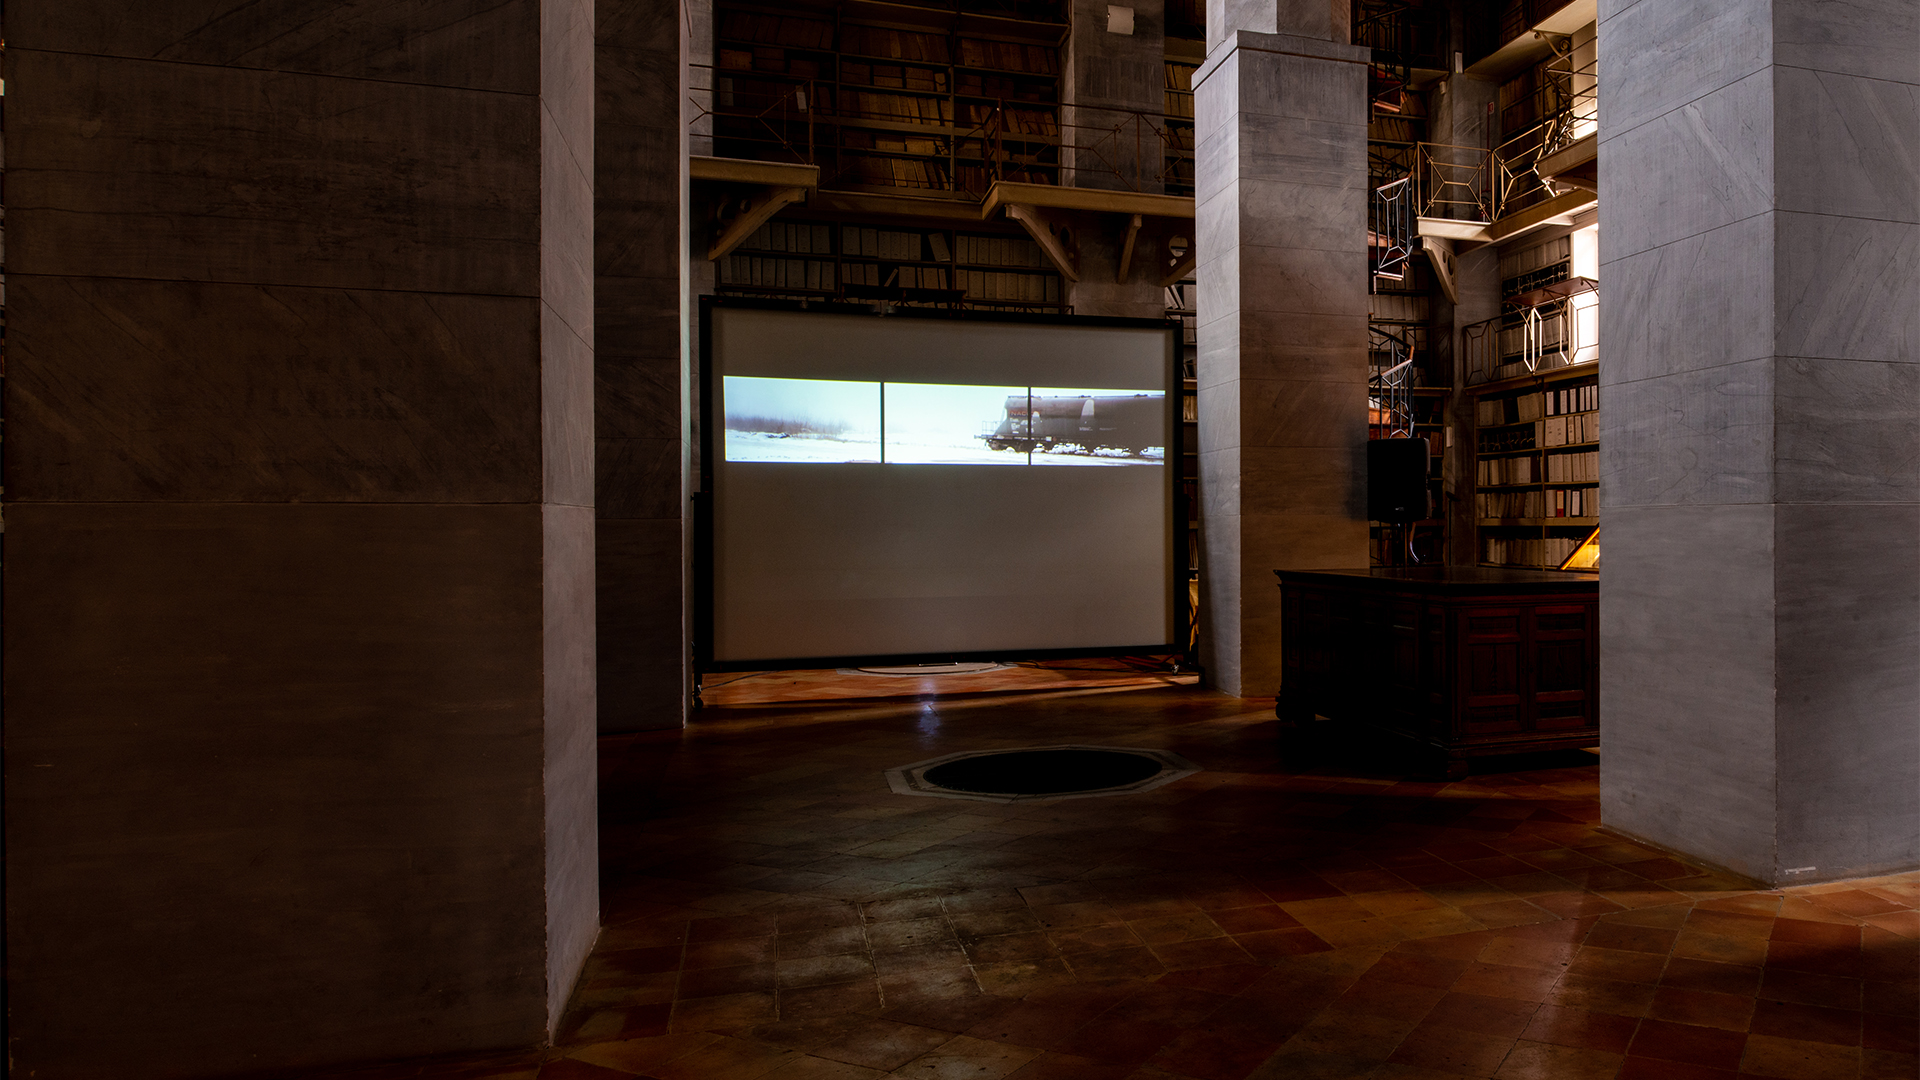 IRON DUST - Reflections installed at the Historical Archive in Palermo, 2018